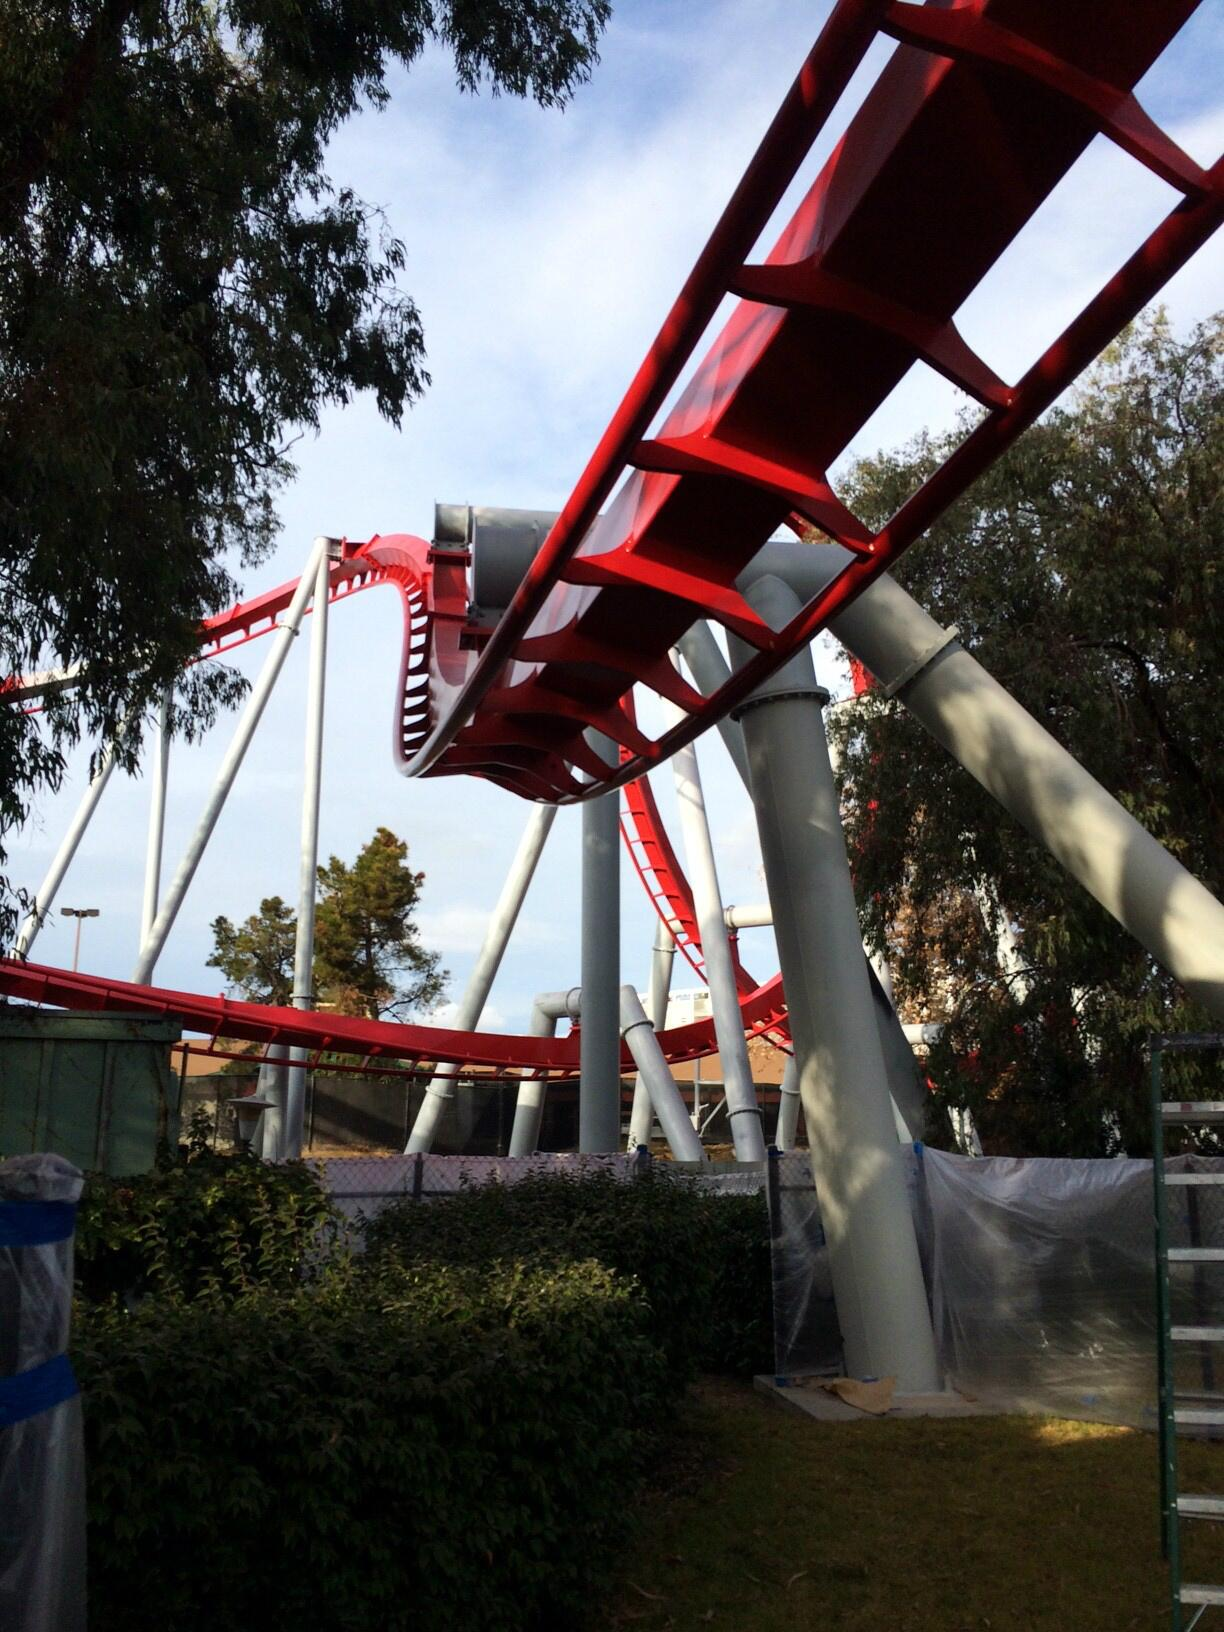 """@CAGreatAmerica: Opening Day is approaching as is the completion of Flight Deck's paint job! http://t.co/uobey6gTKs"" - Looks great...shiny!"